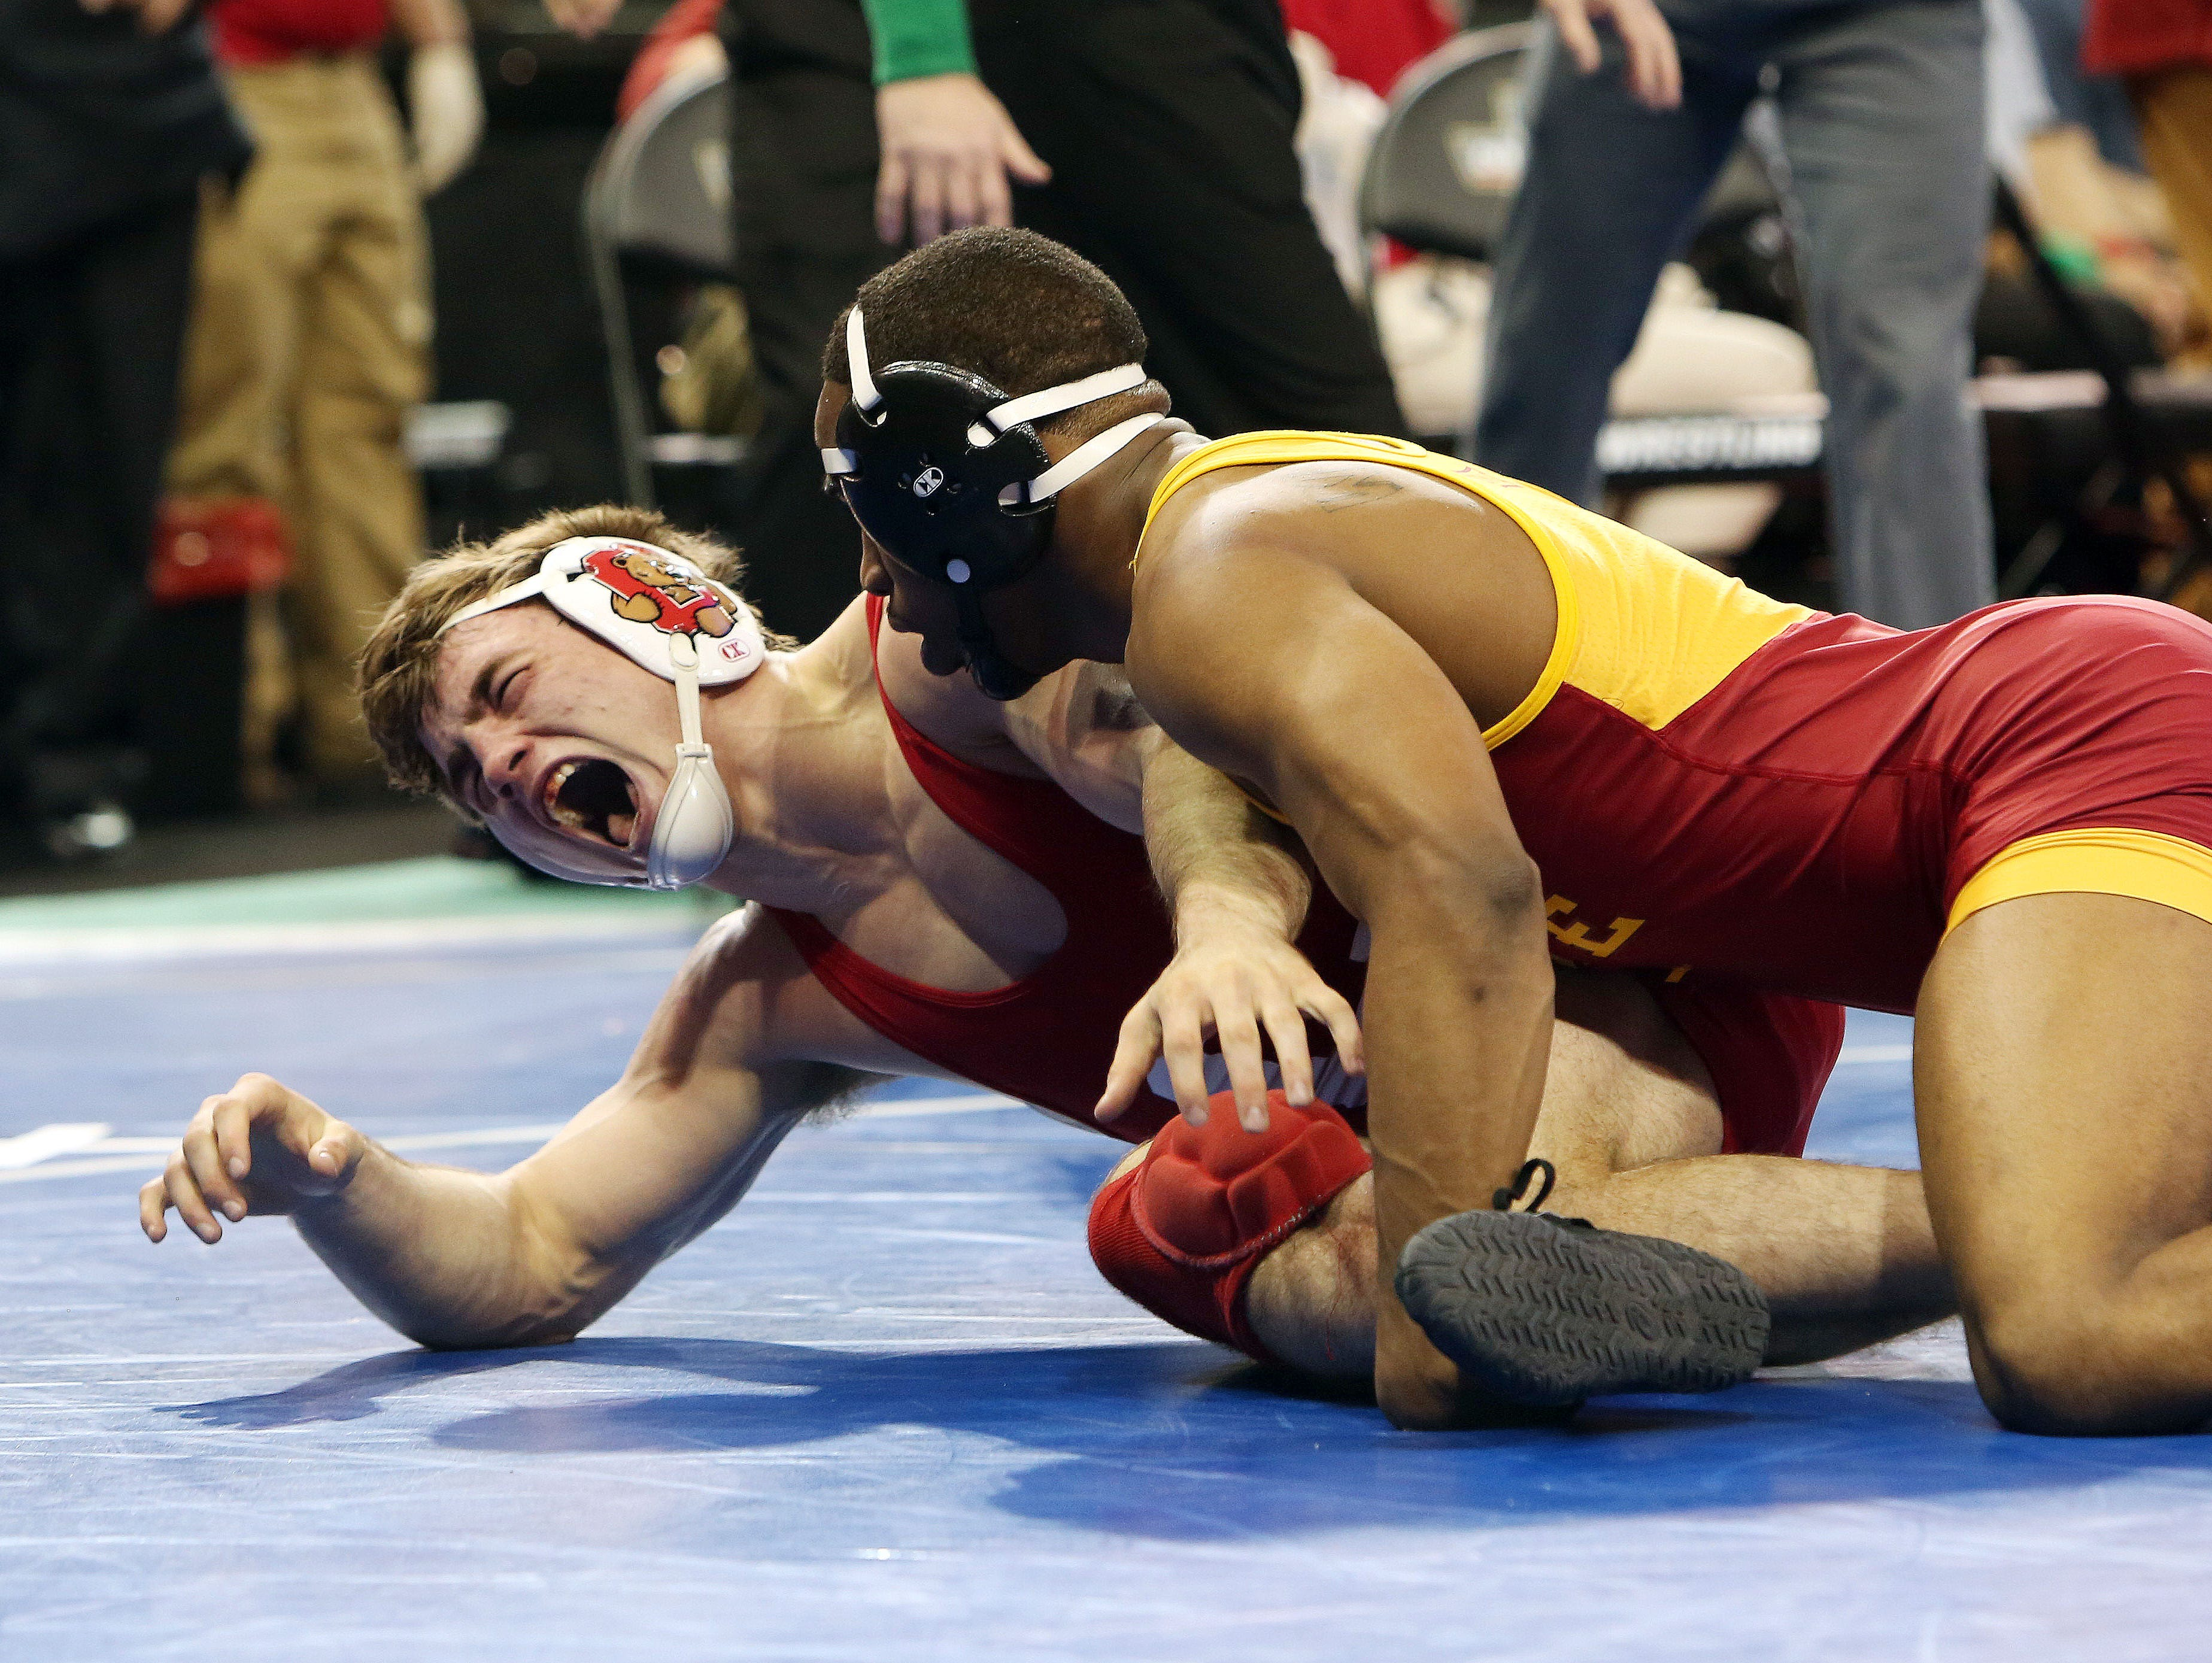 From left, Cornell's Brian Realbuto screams in pain as he grabs his knee during match against Iowa State's Leland Weatherspoon in the quarterfinals in the 174-pound weight class during the NCAA Wrestling Championships at Madison Square Garden March 17, 2016. Weatherspoon won the match knocking off the number two seed Realbuto.